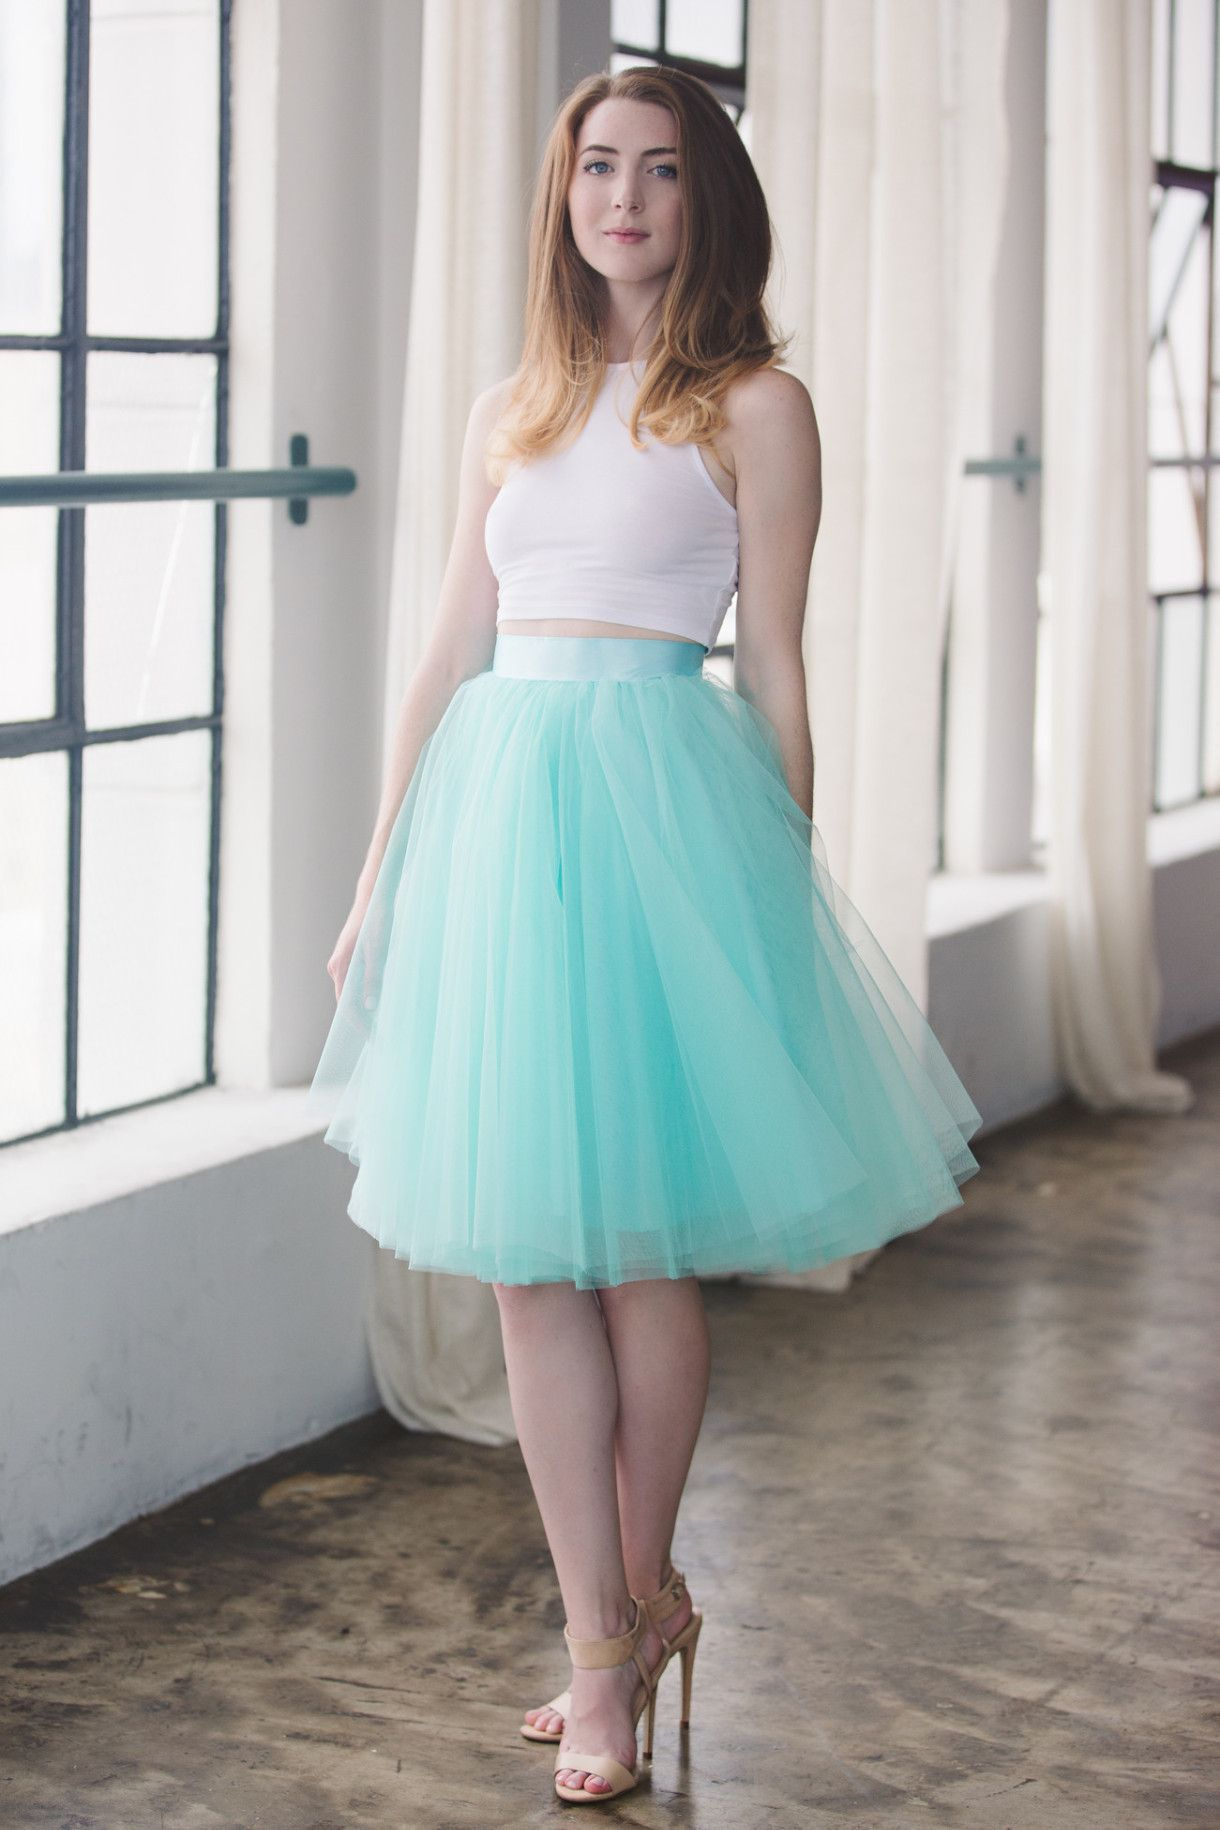 2f91ceb9d Space 46 Boutique Tulle Skirt ... My Dream Skirt Oh My Gahhh!! #Fashion  #WomensFashion #Space46 #Space46Boutique #Tulle #TulleSkirt #Skirts # ...